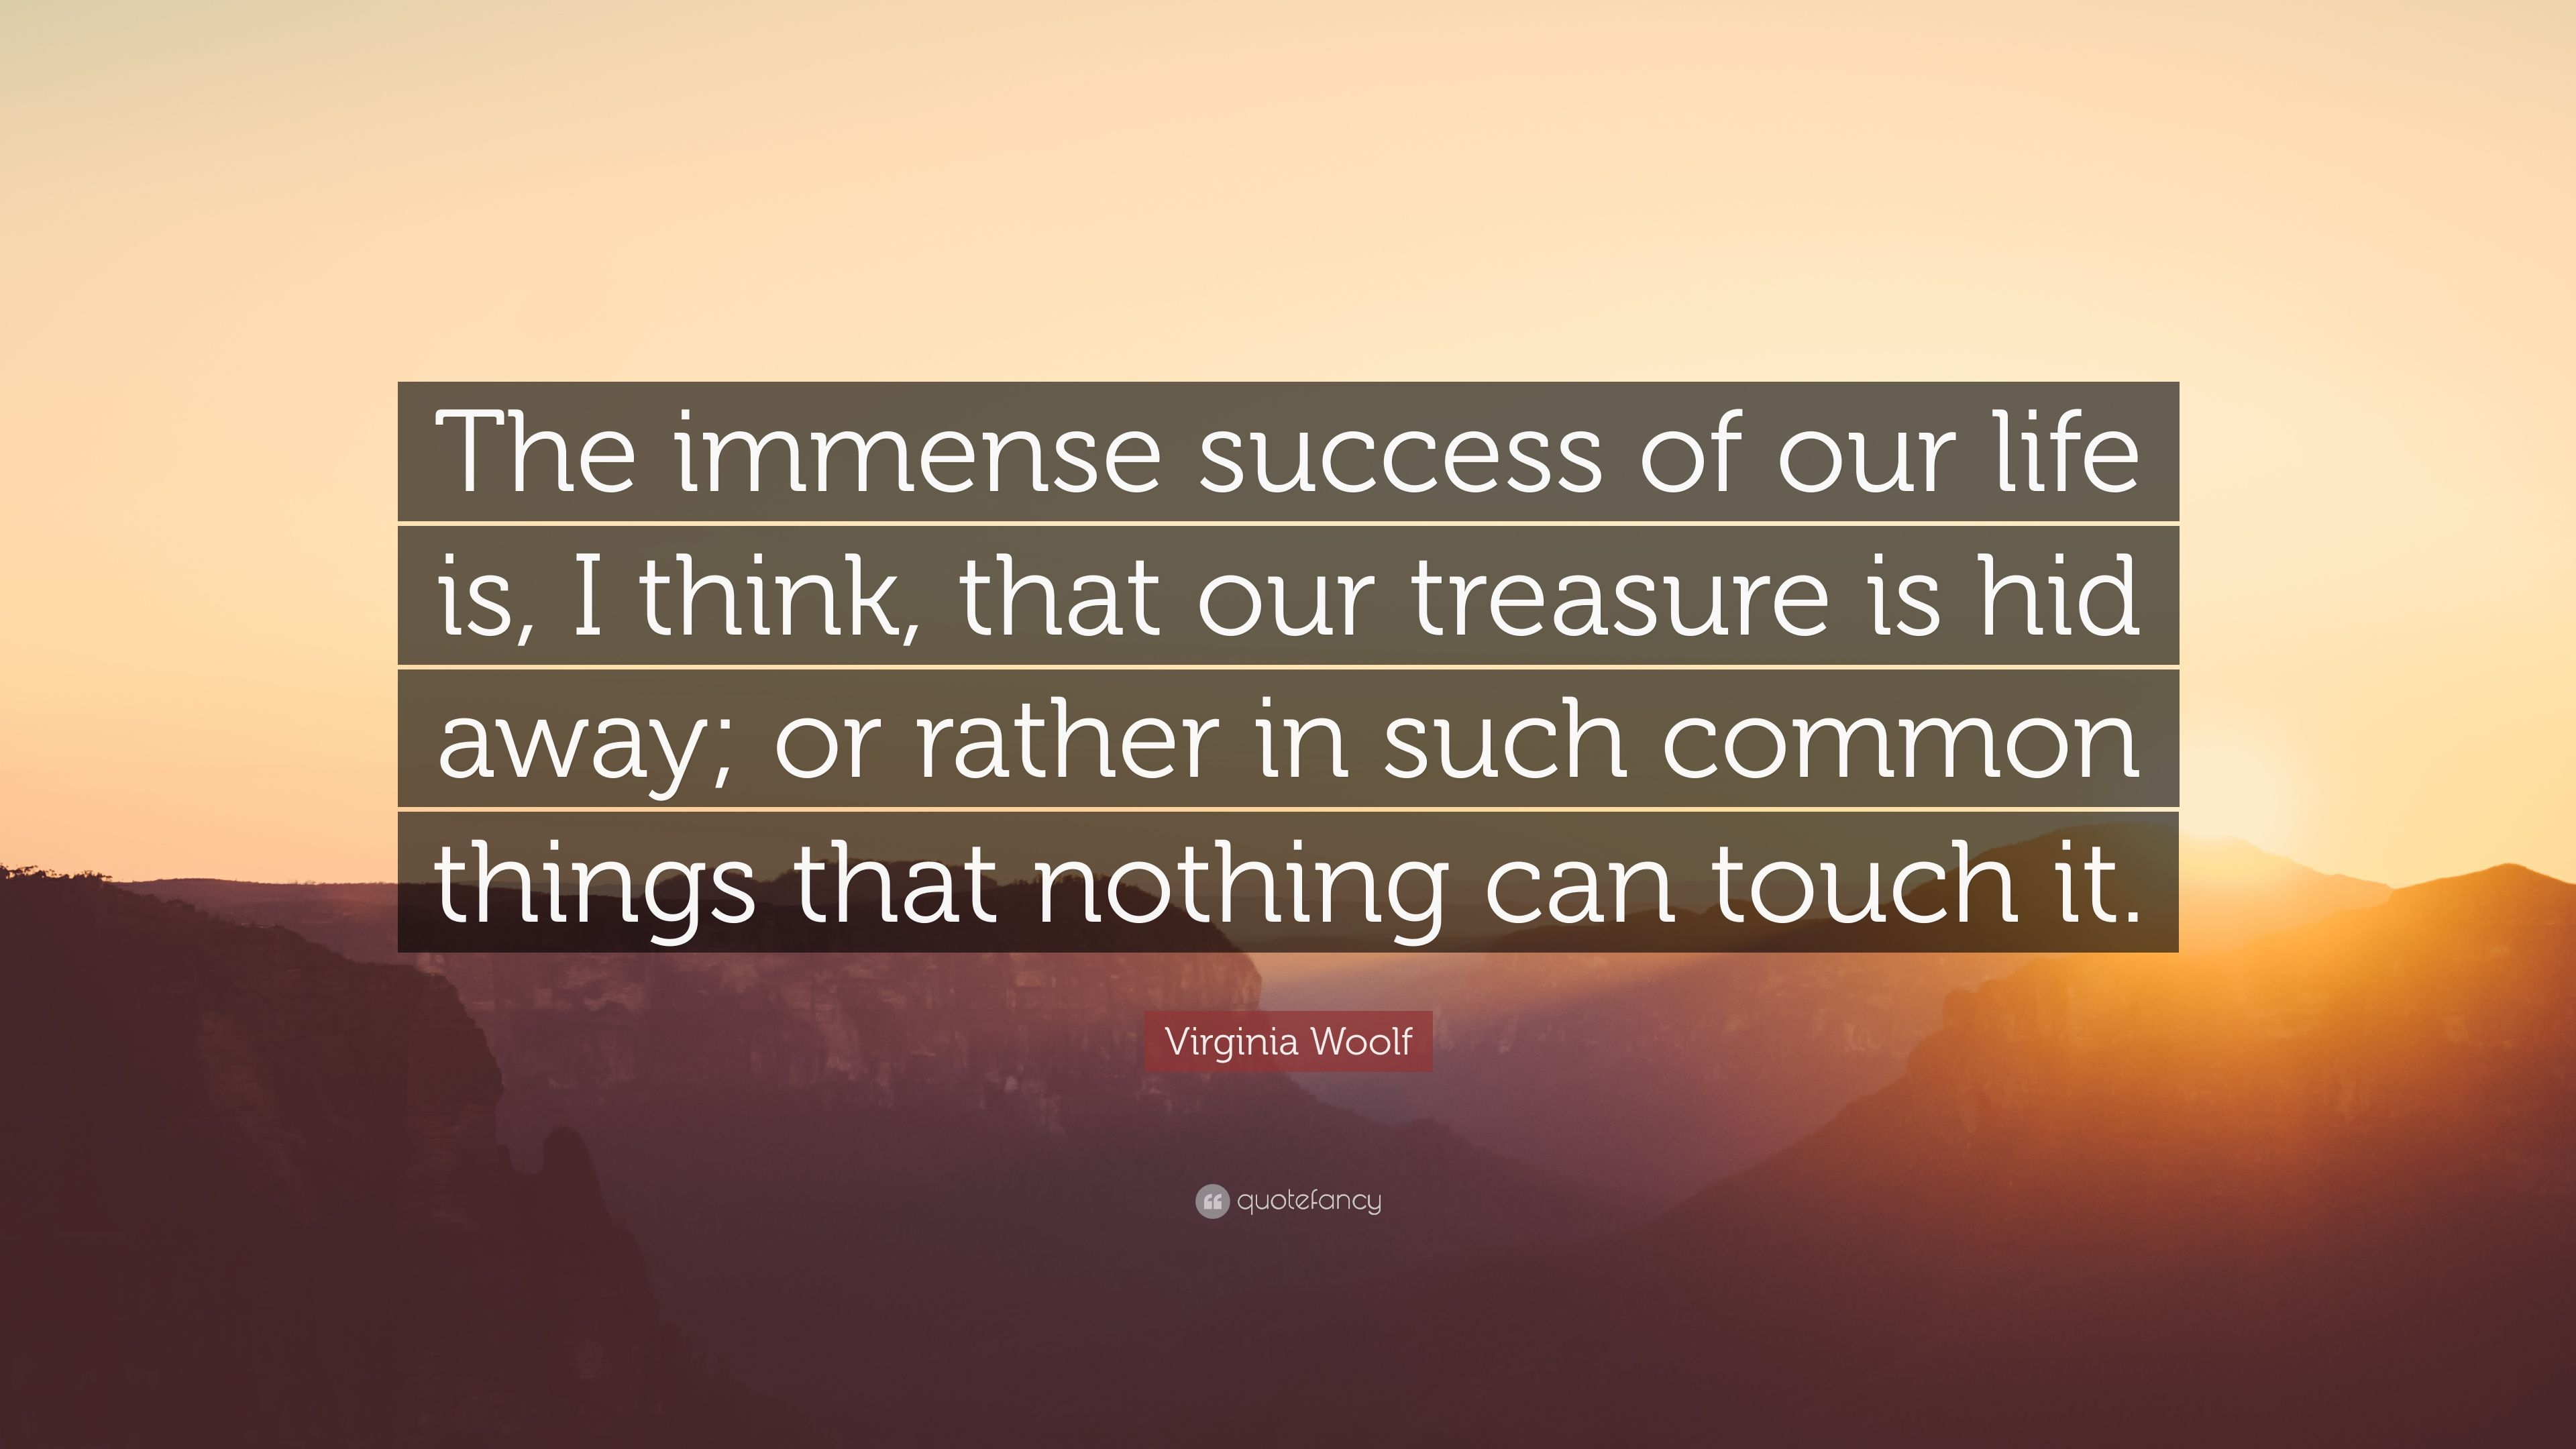 how can we get success in our life